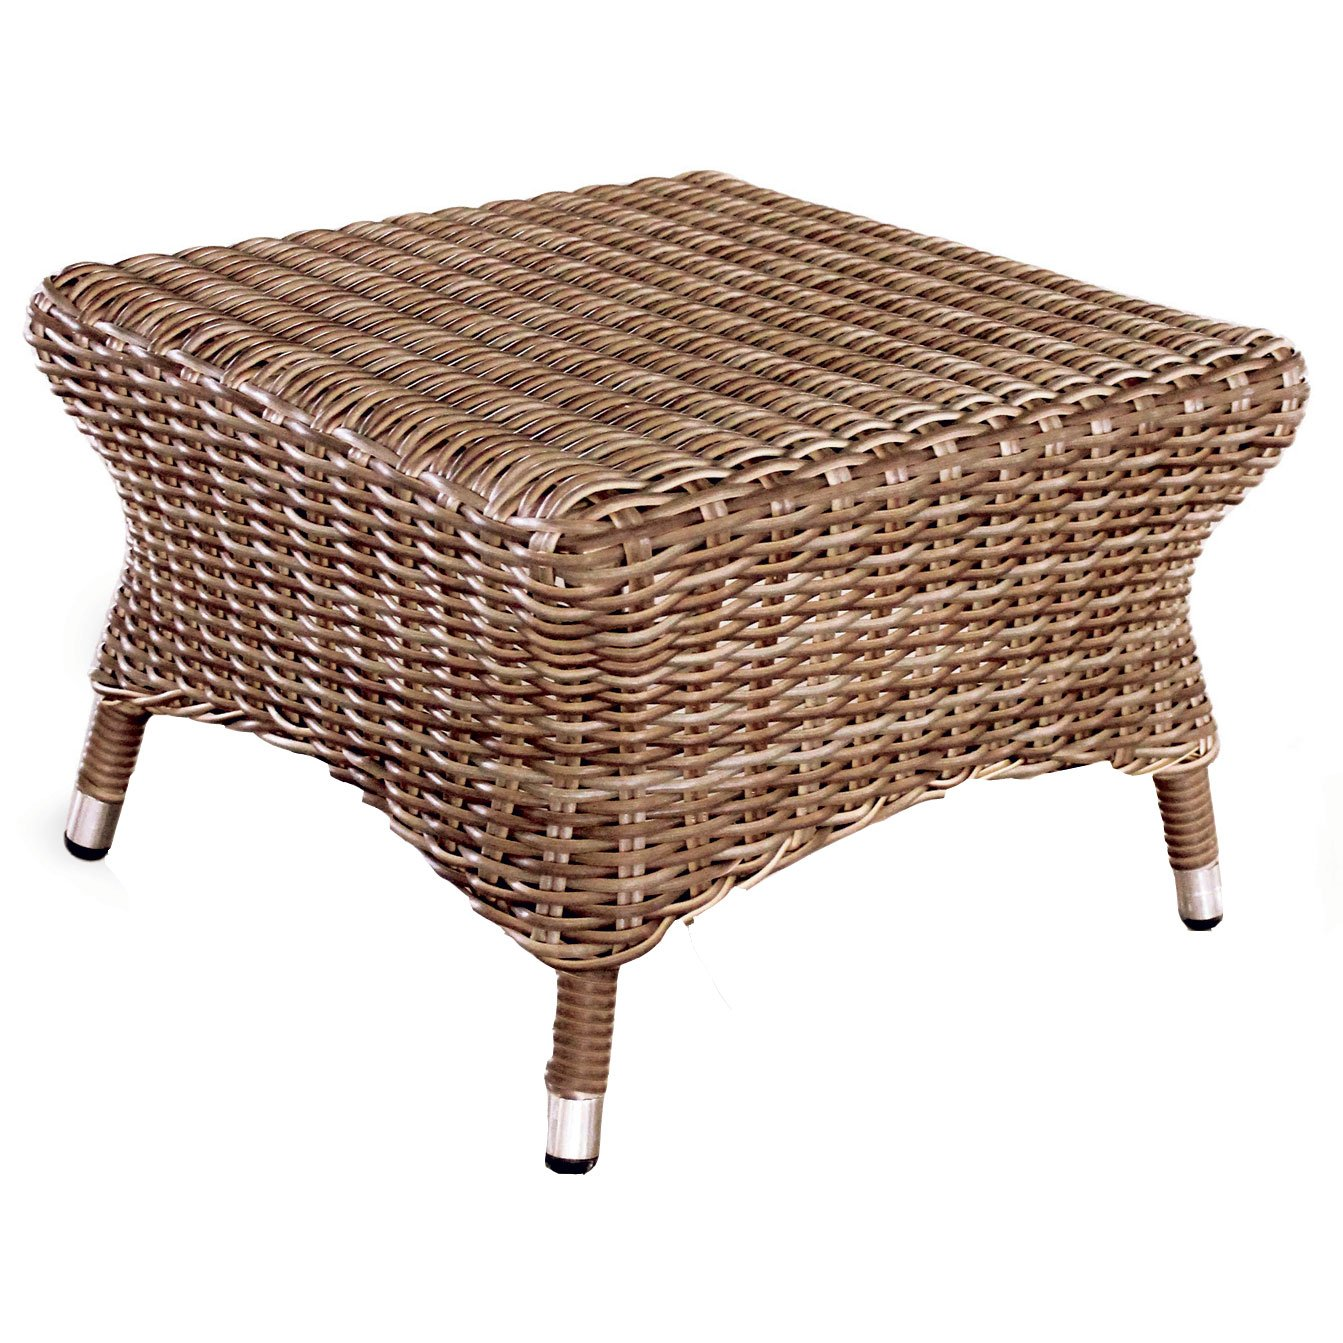 Best 41714012 side table footstool in montreal natural amazon co uk garden outdoors